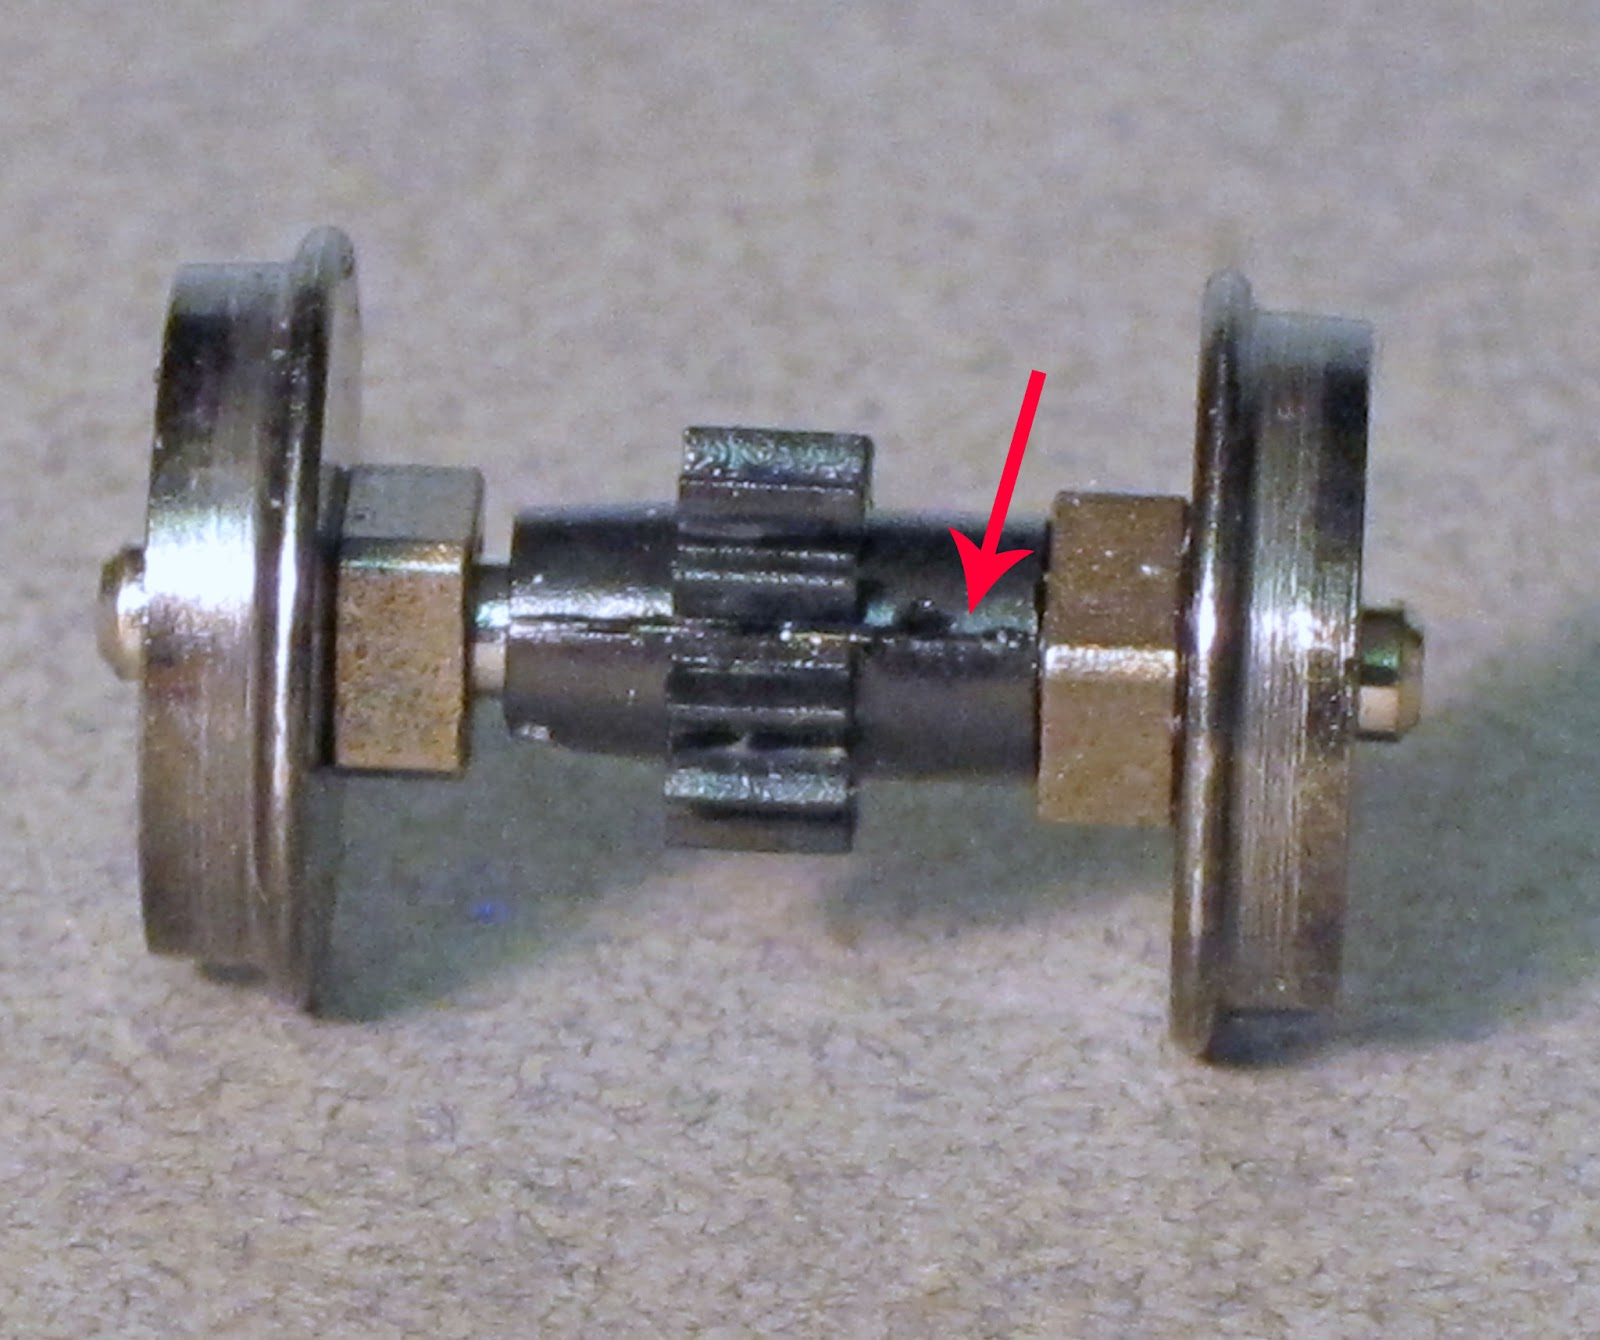 Proto 2000 GP7 truck power and painting question - Model Railroader on